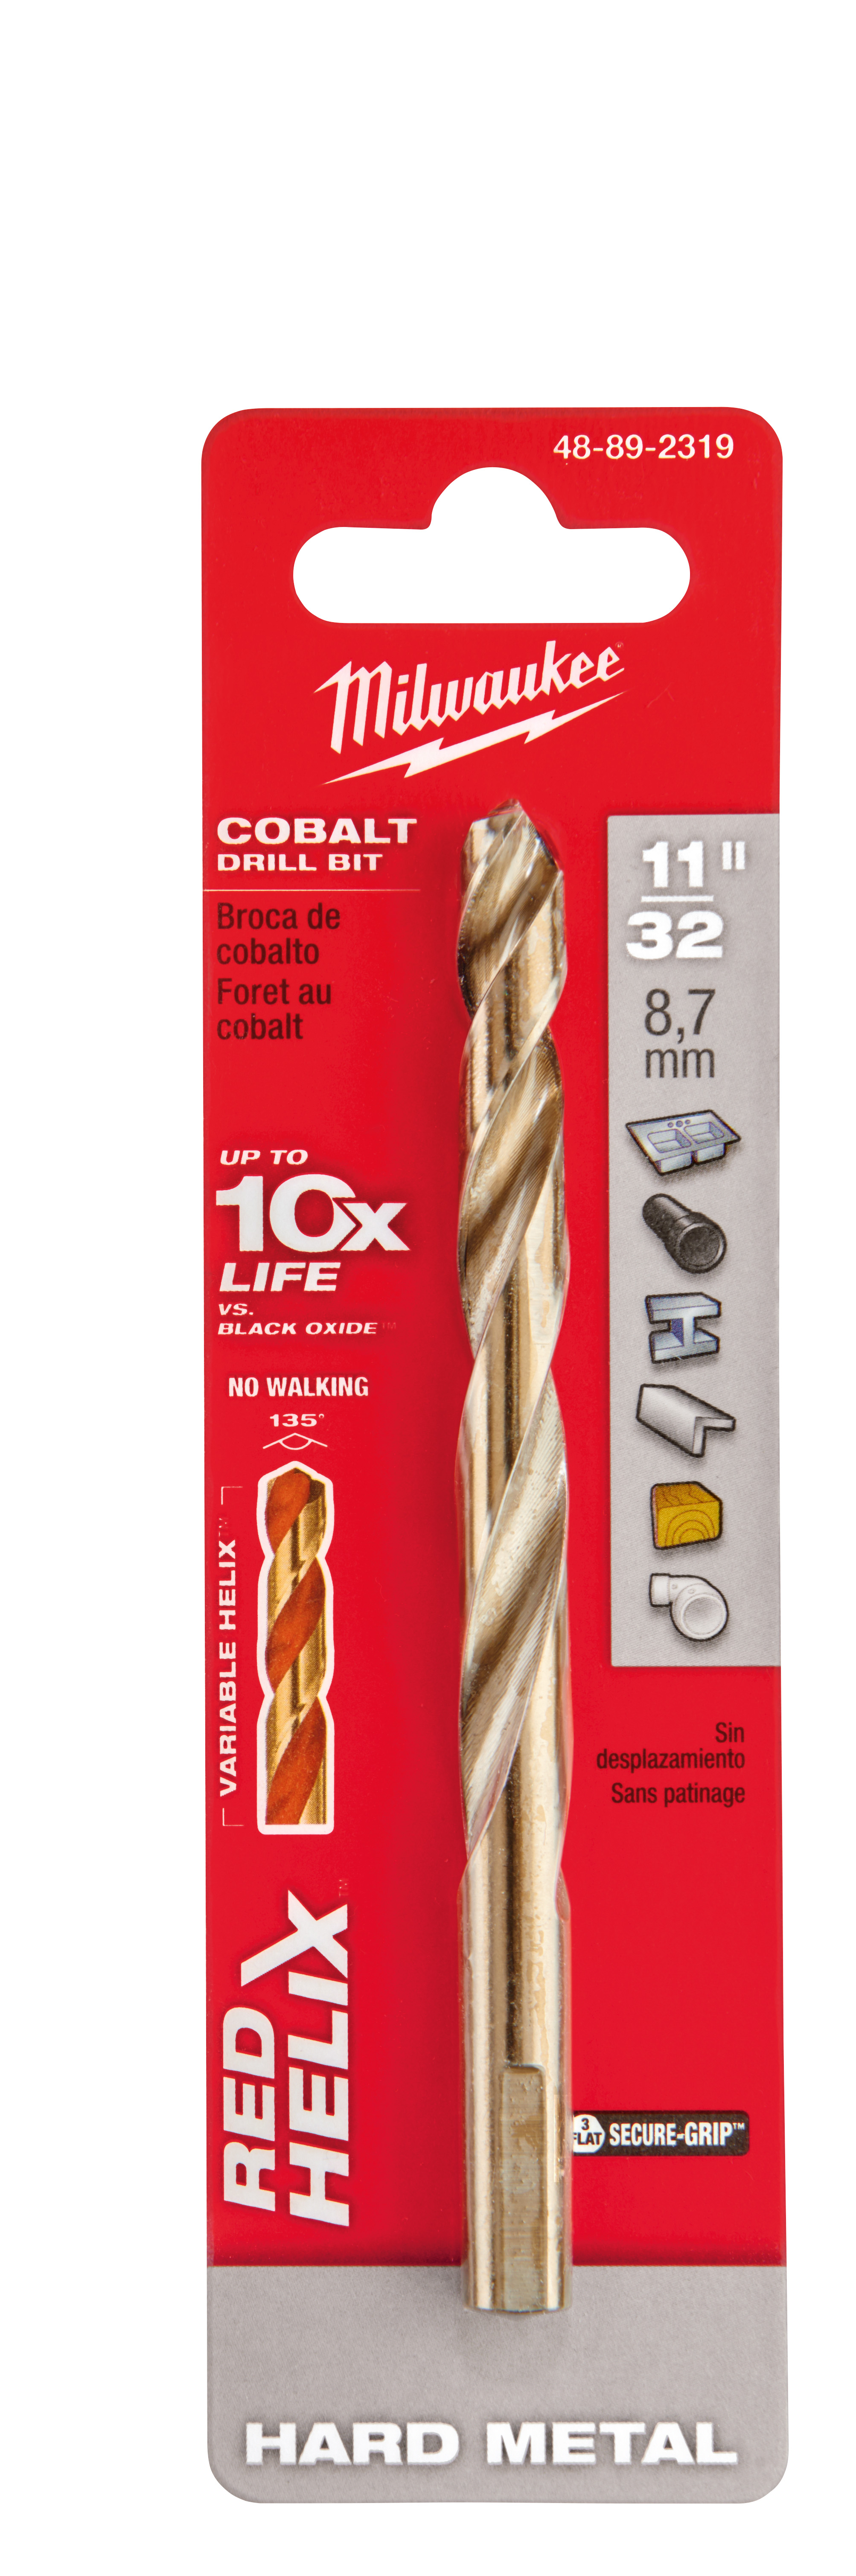 Milwaukee® 48-89-2319 RED HELIX™ Jobber Length Twist Drill Bit, 11/32 in Drill - Fraction, 0.3438 in Drill - Decimal Inch, 135 deg Point, High Speed Cobalt, Uncoated